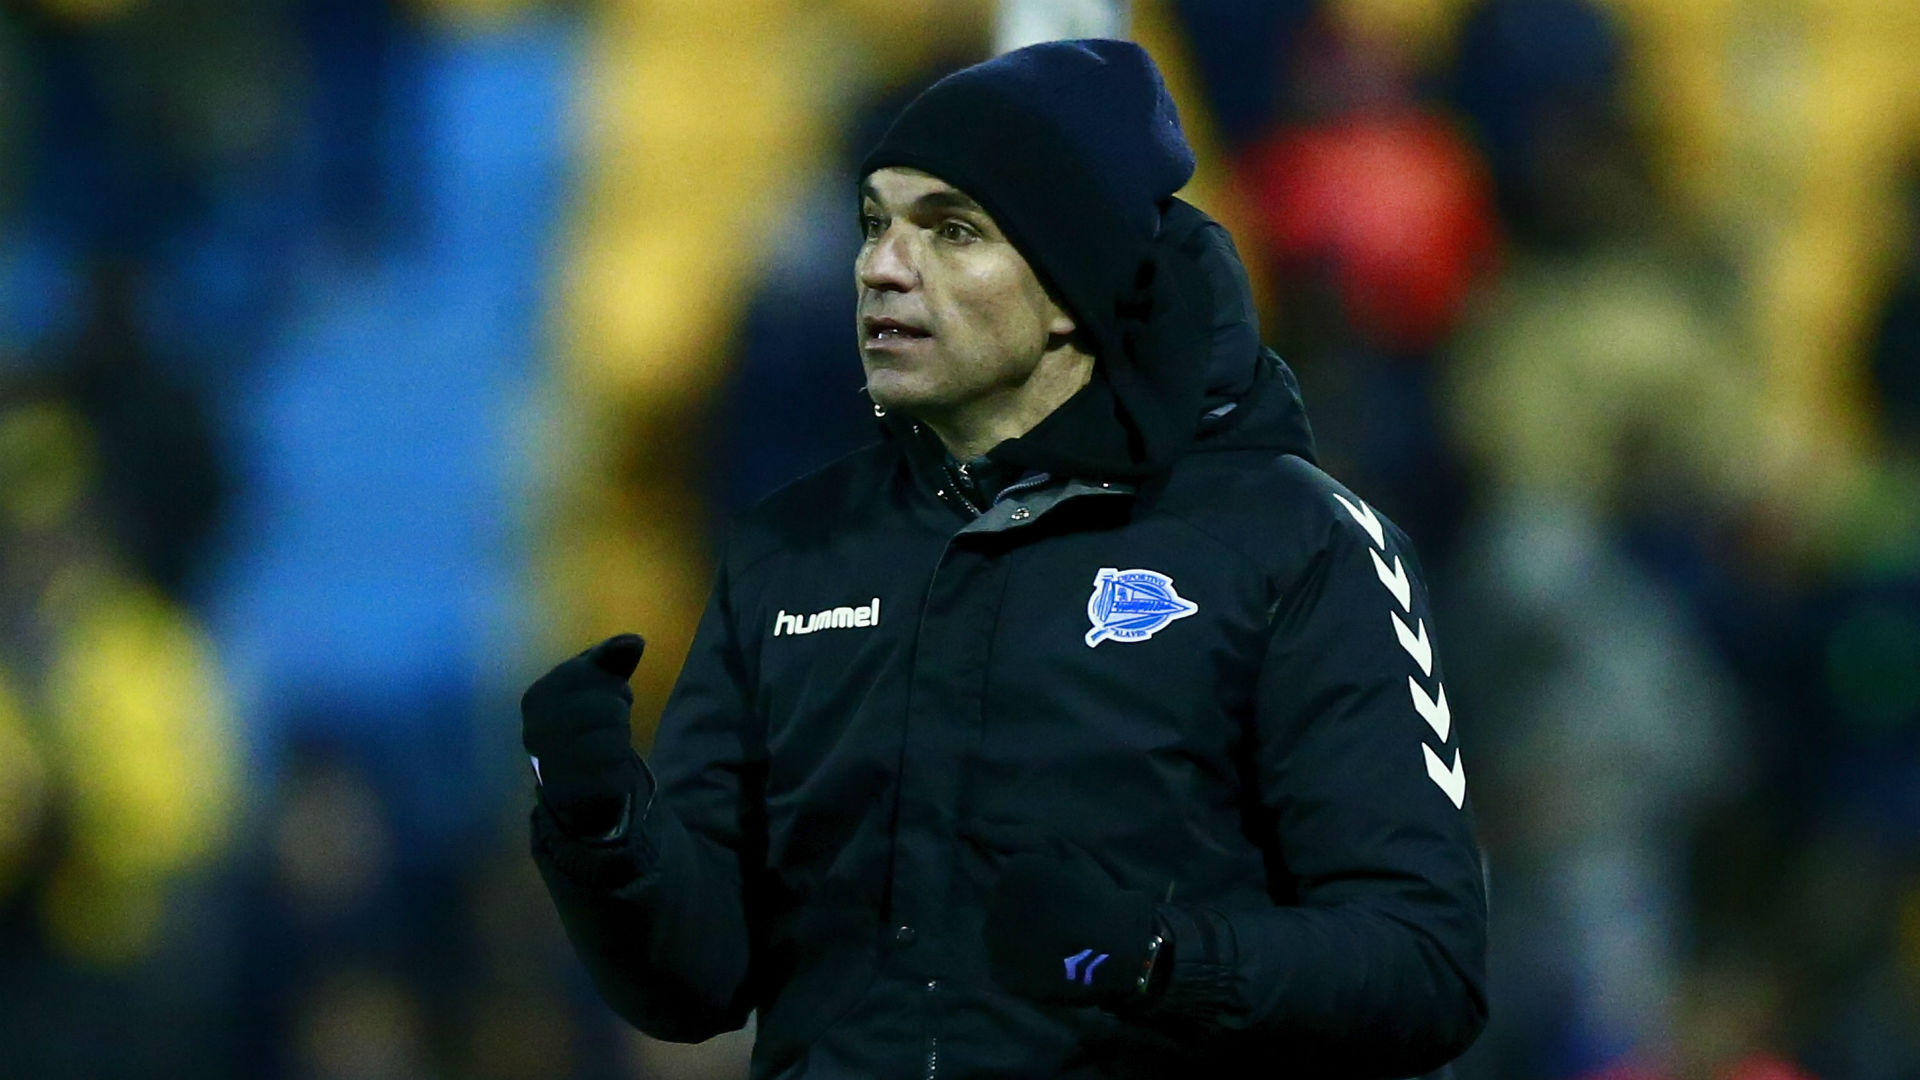 Mauricio Pellegrino Argentine steps down as Alaves boss